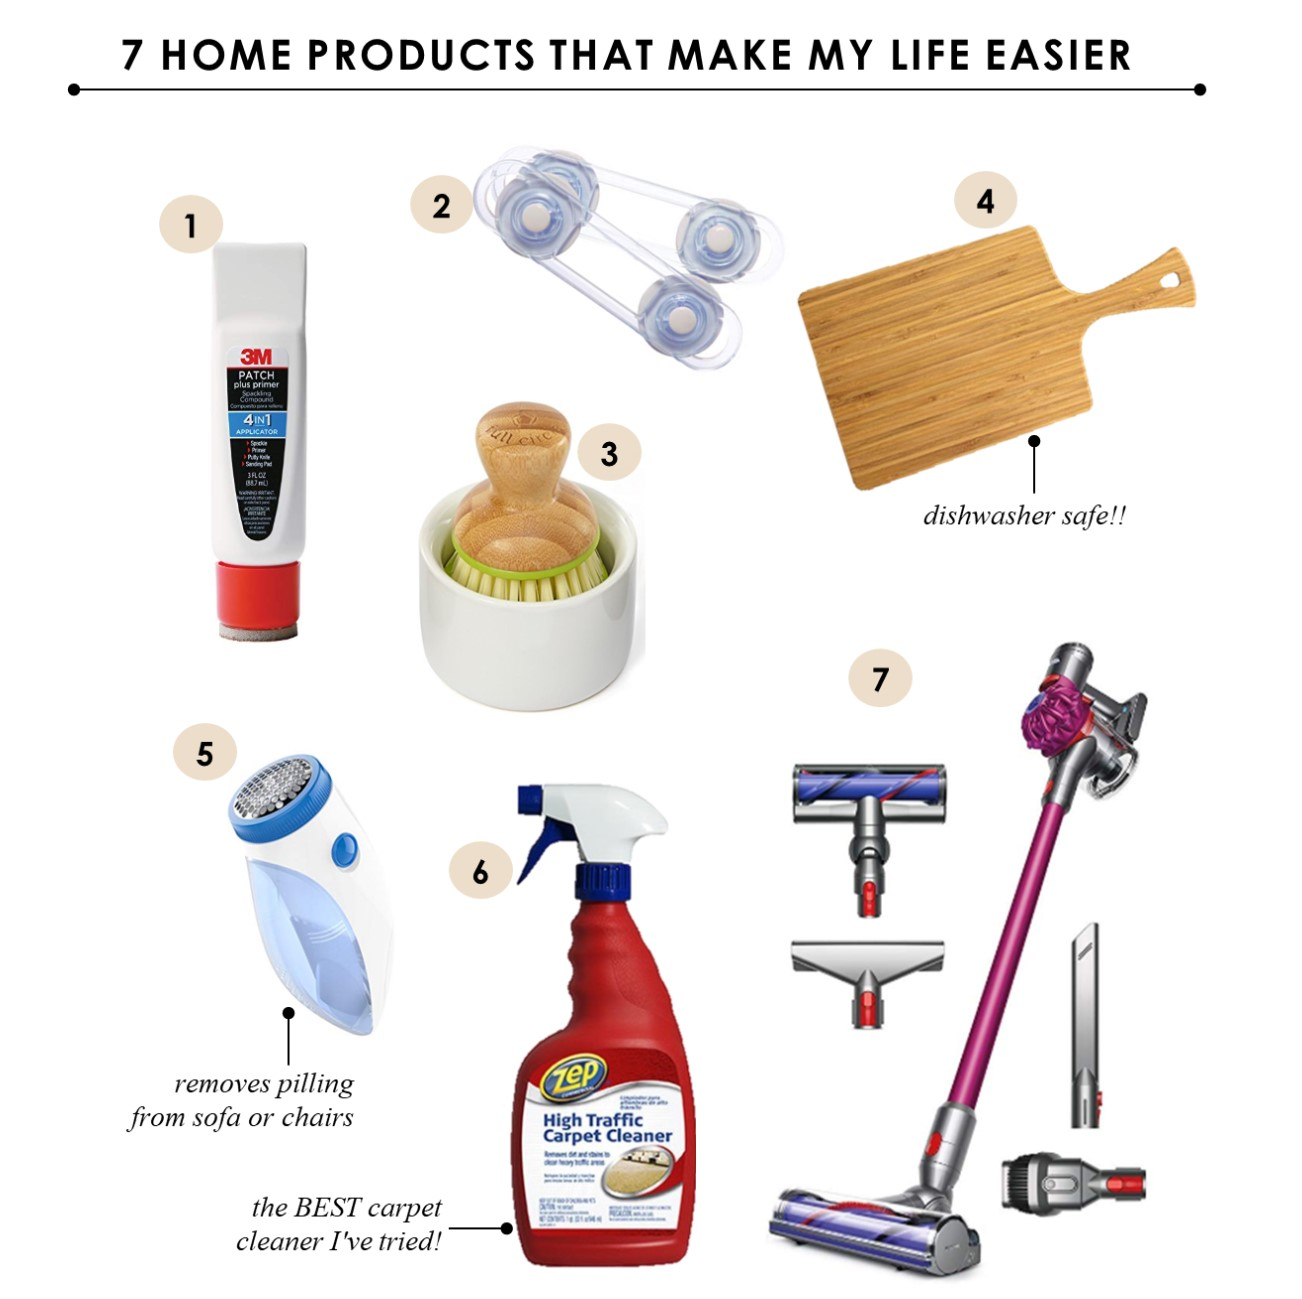 Home+Products+That+Make+Life+Easier+Amazon.jpg